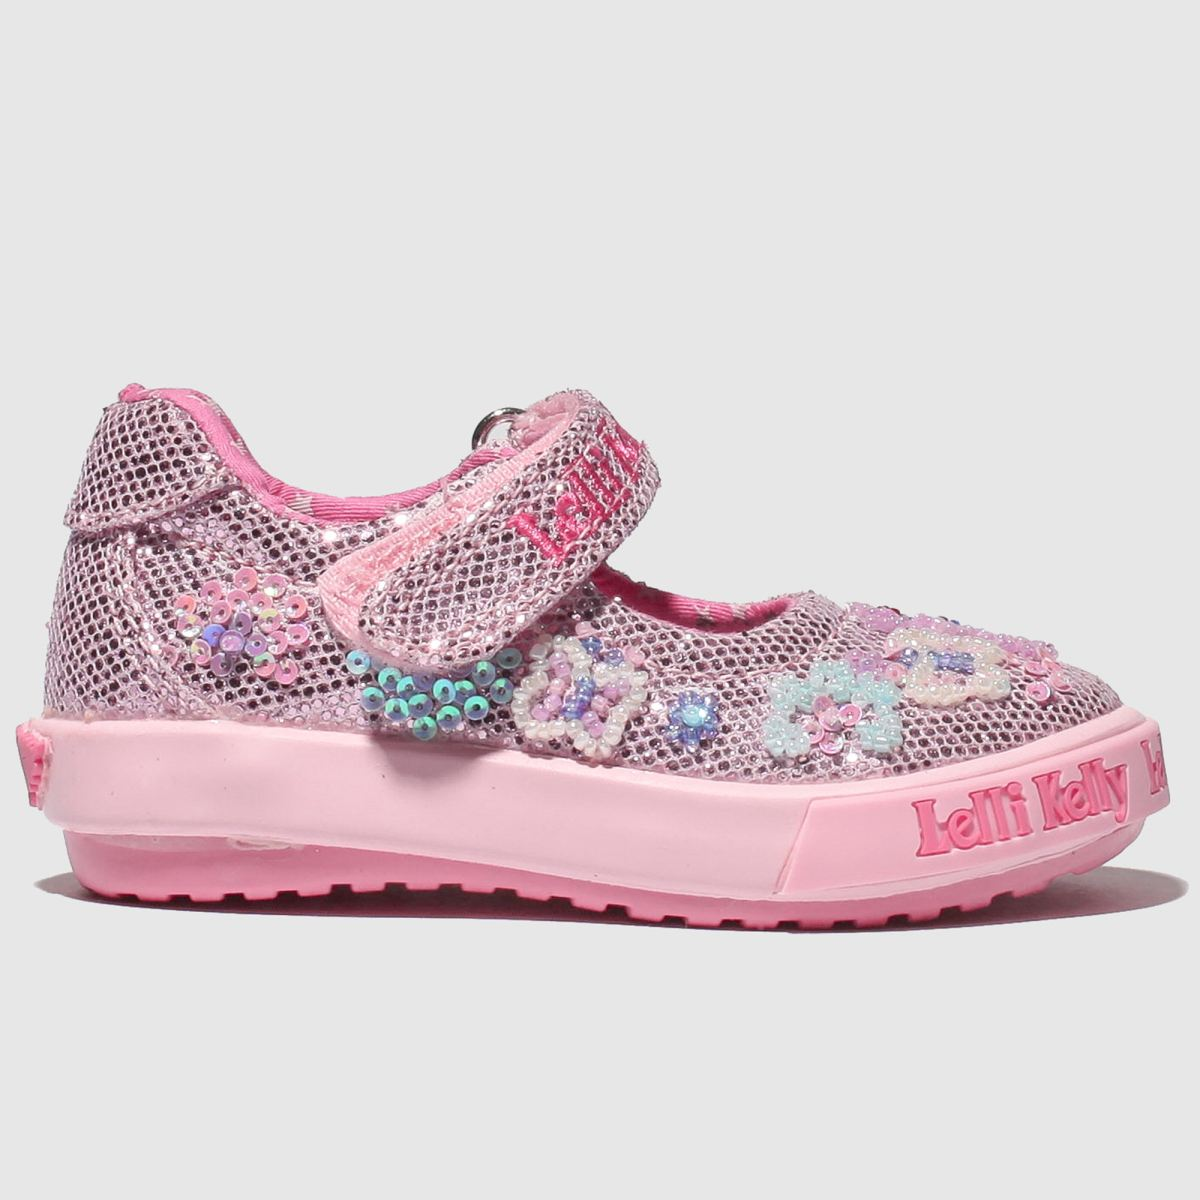 Lelli Kelly Pink Summer Baby Dolly Shoes Toddler